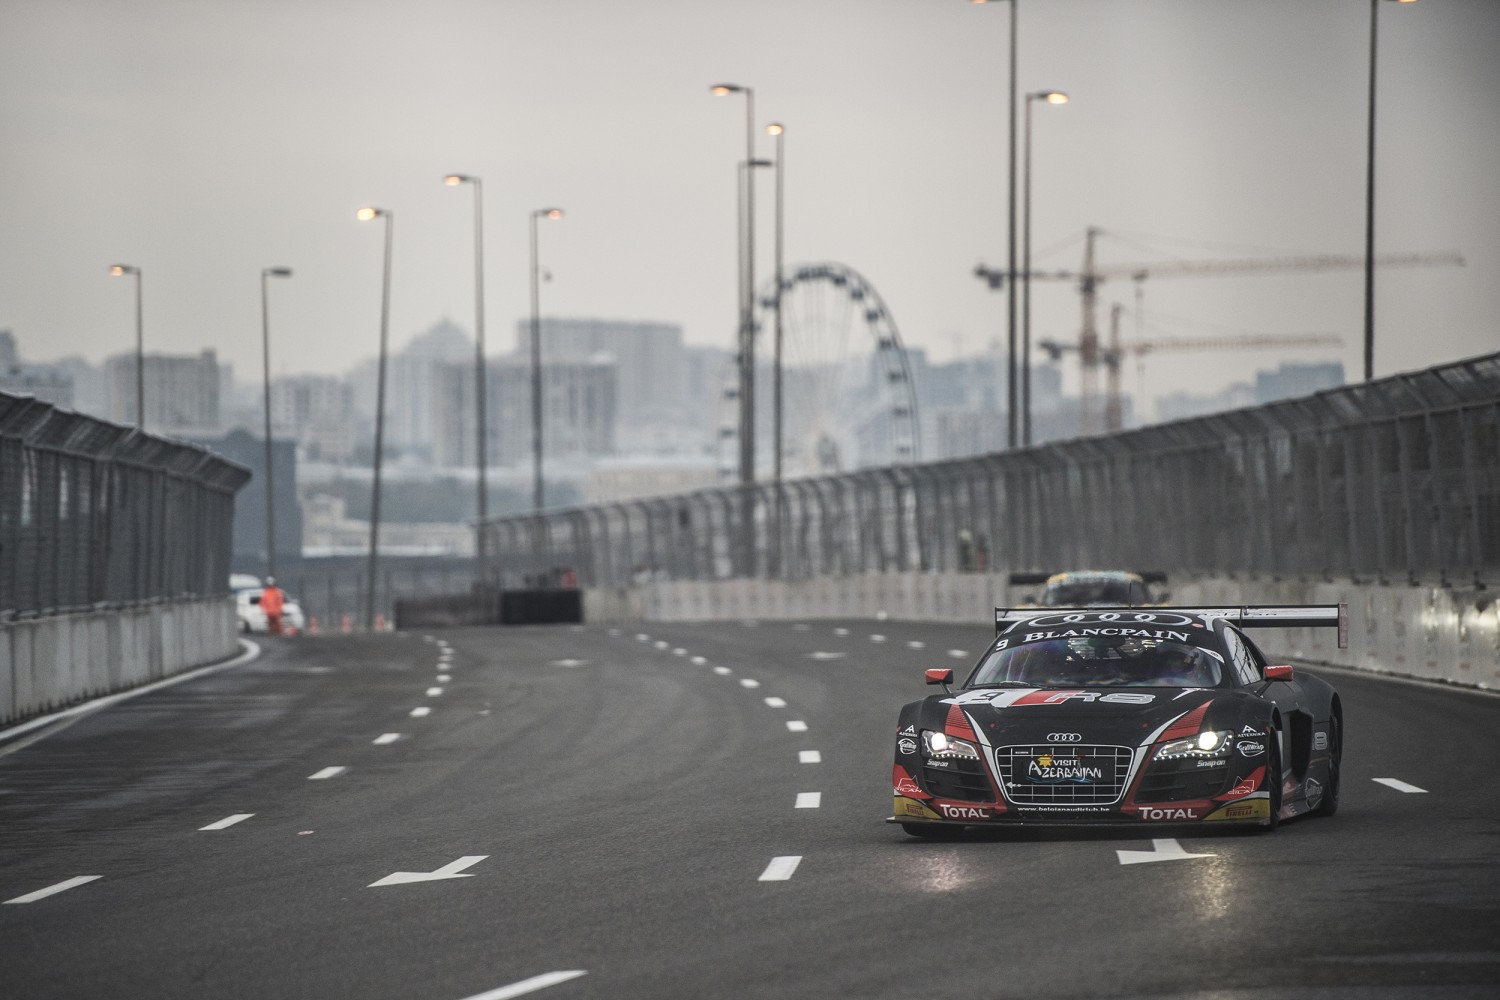 Stephane Ortelli on top after exciting Baku World Challenge Qualifying Session